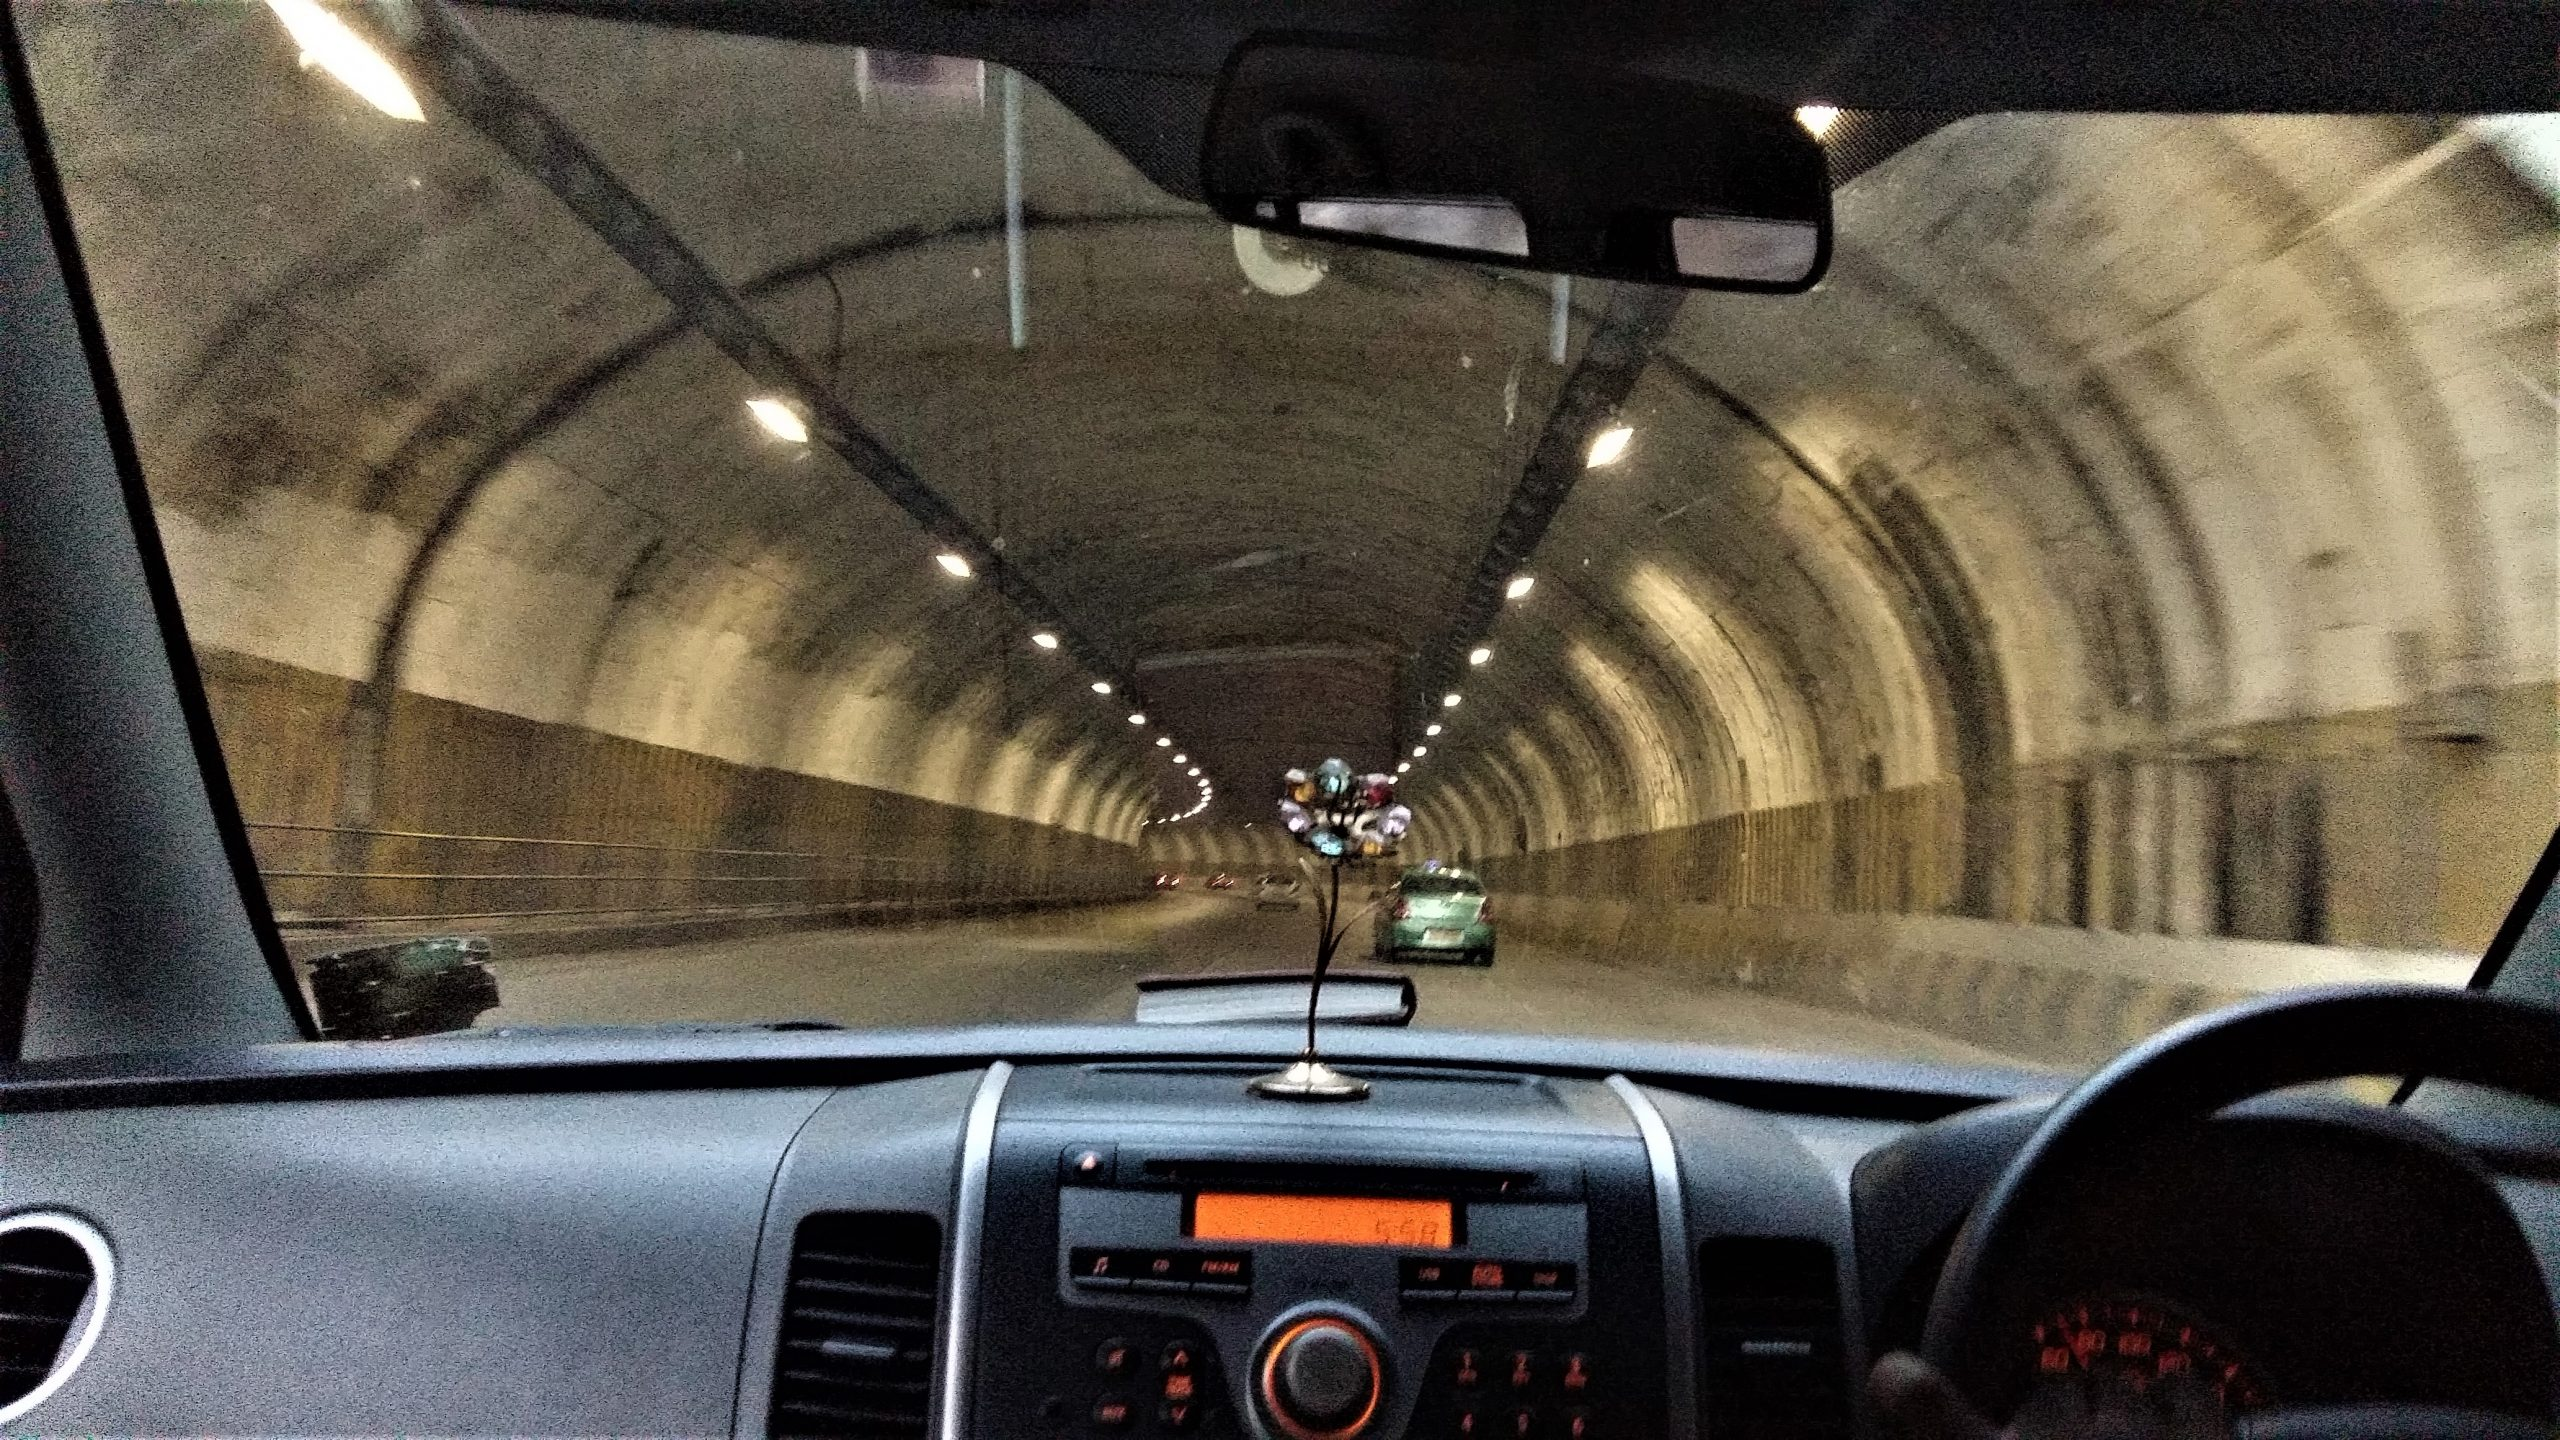 Driving in the Tunnel